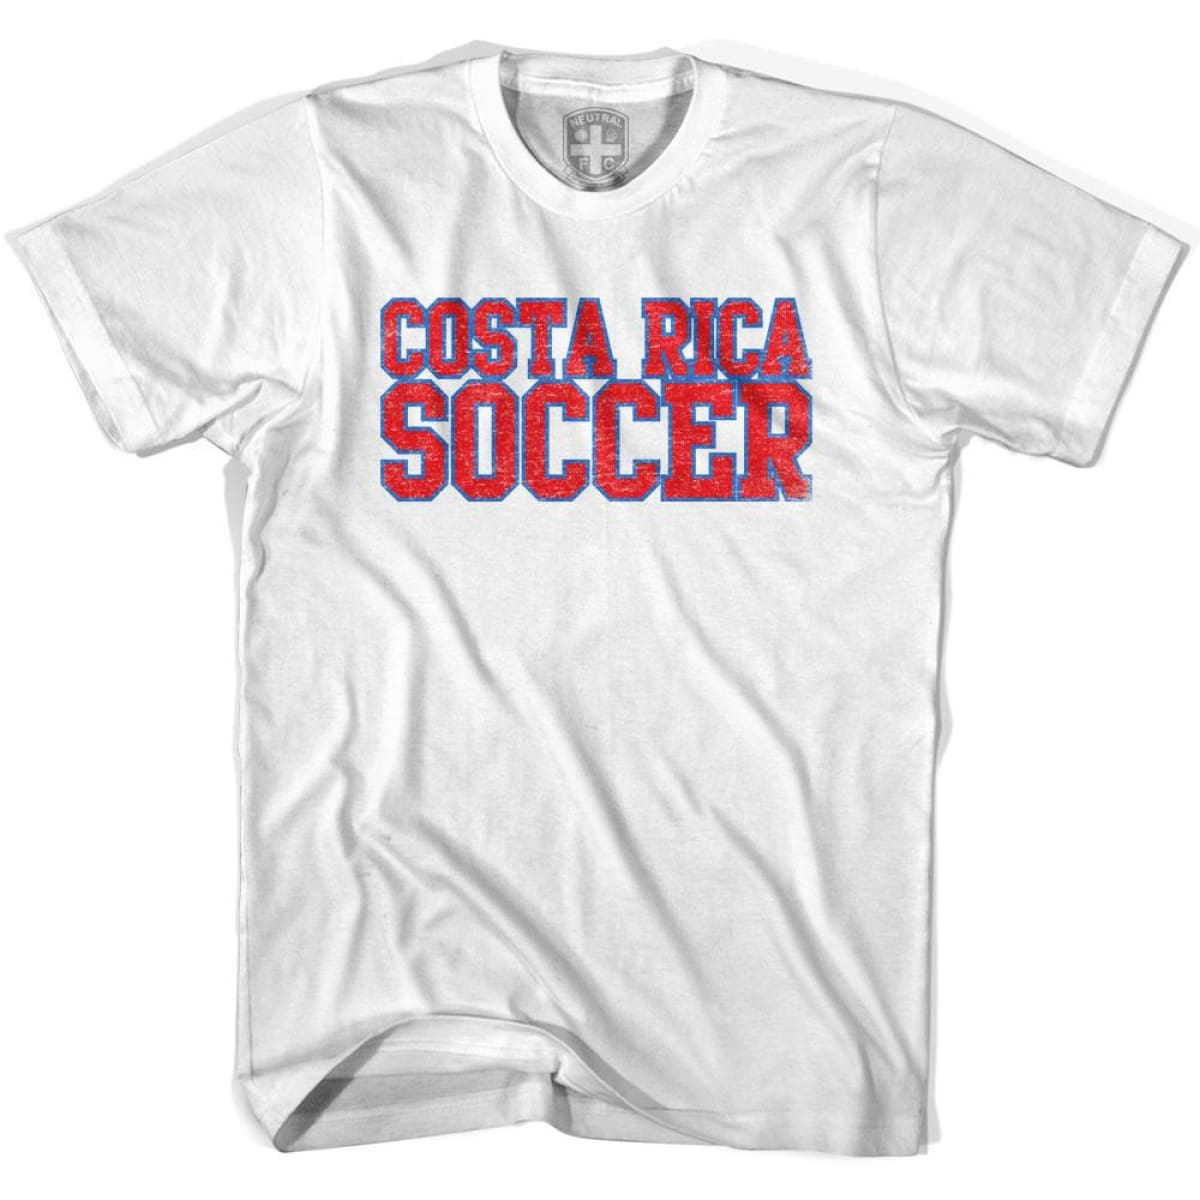 Costa Rica Soccer Nations World Cup T-shirt - White / Youth X-Small - Ultras Soccer T-shirts